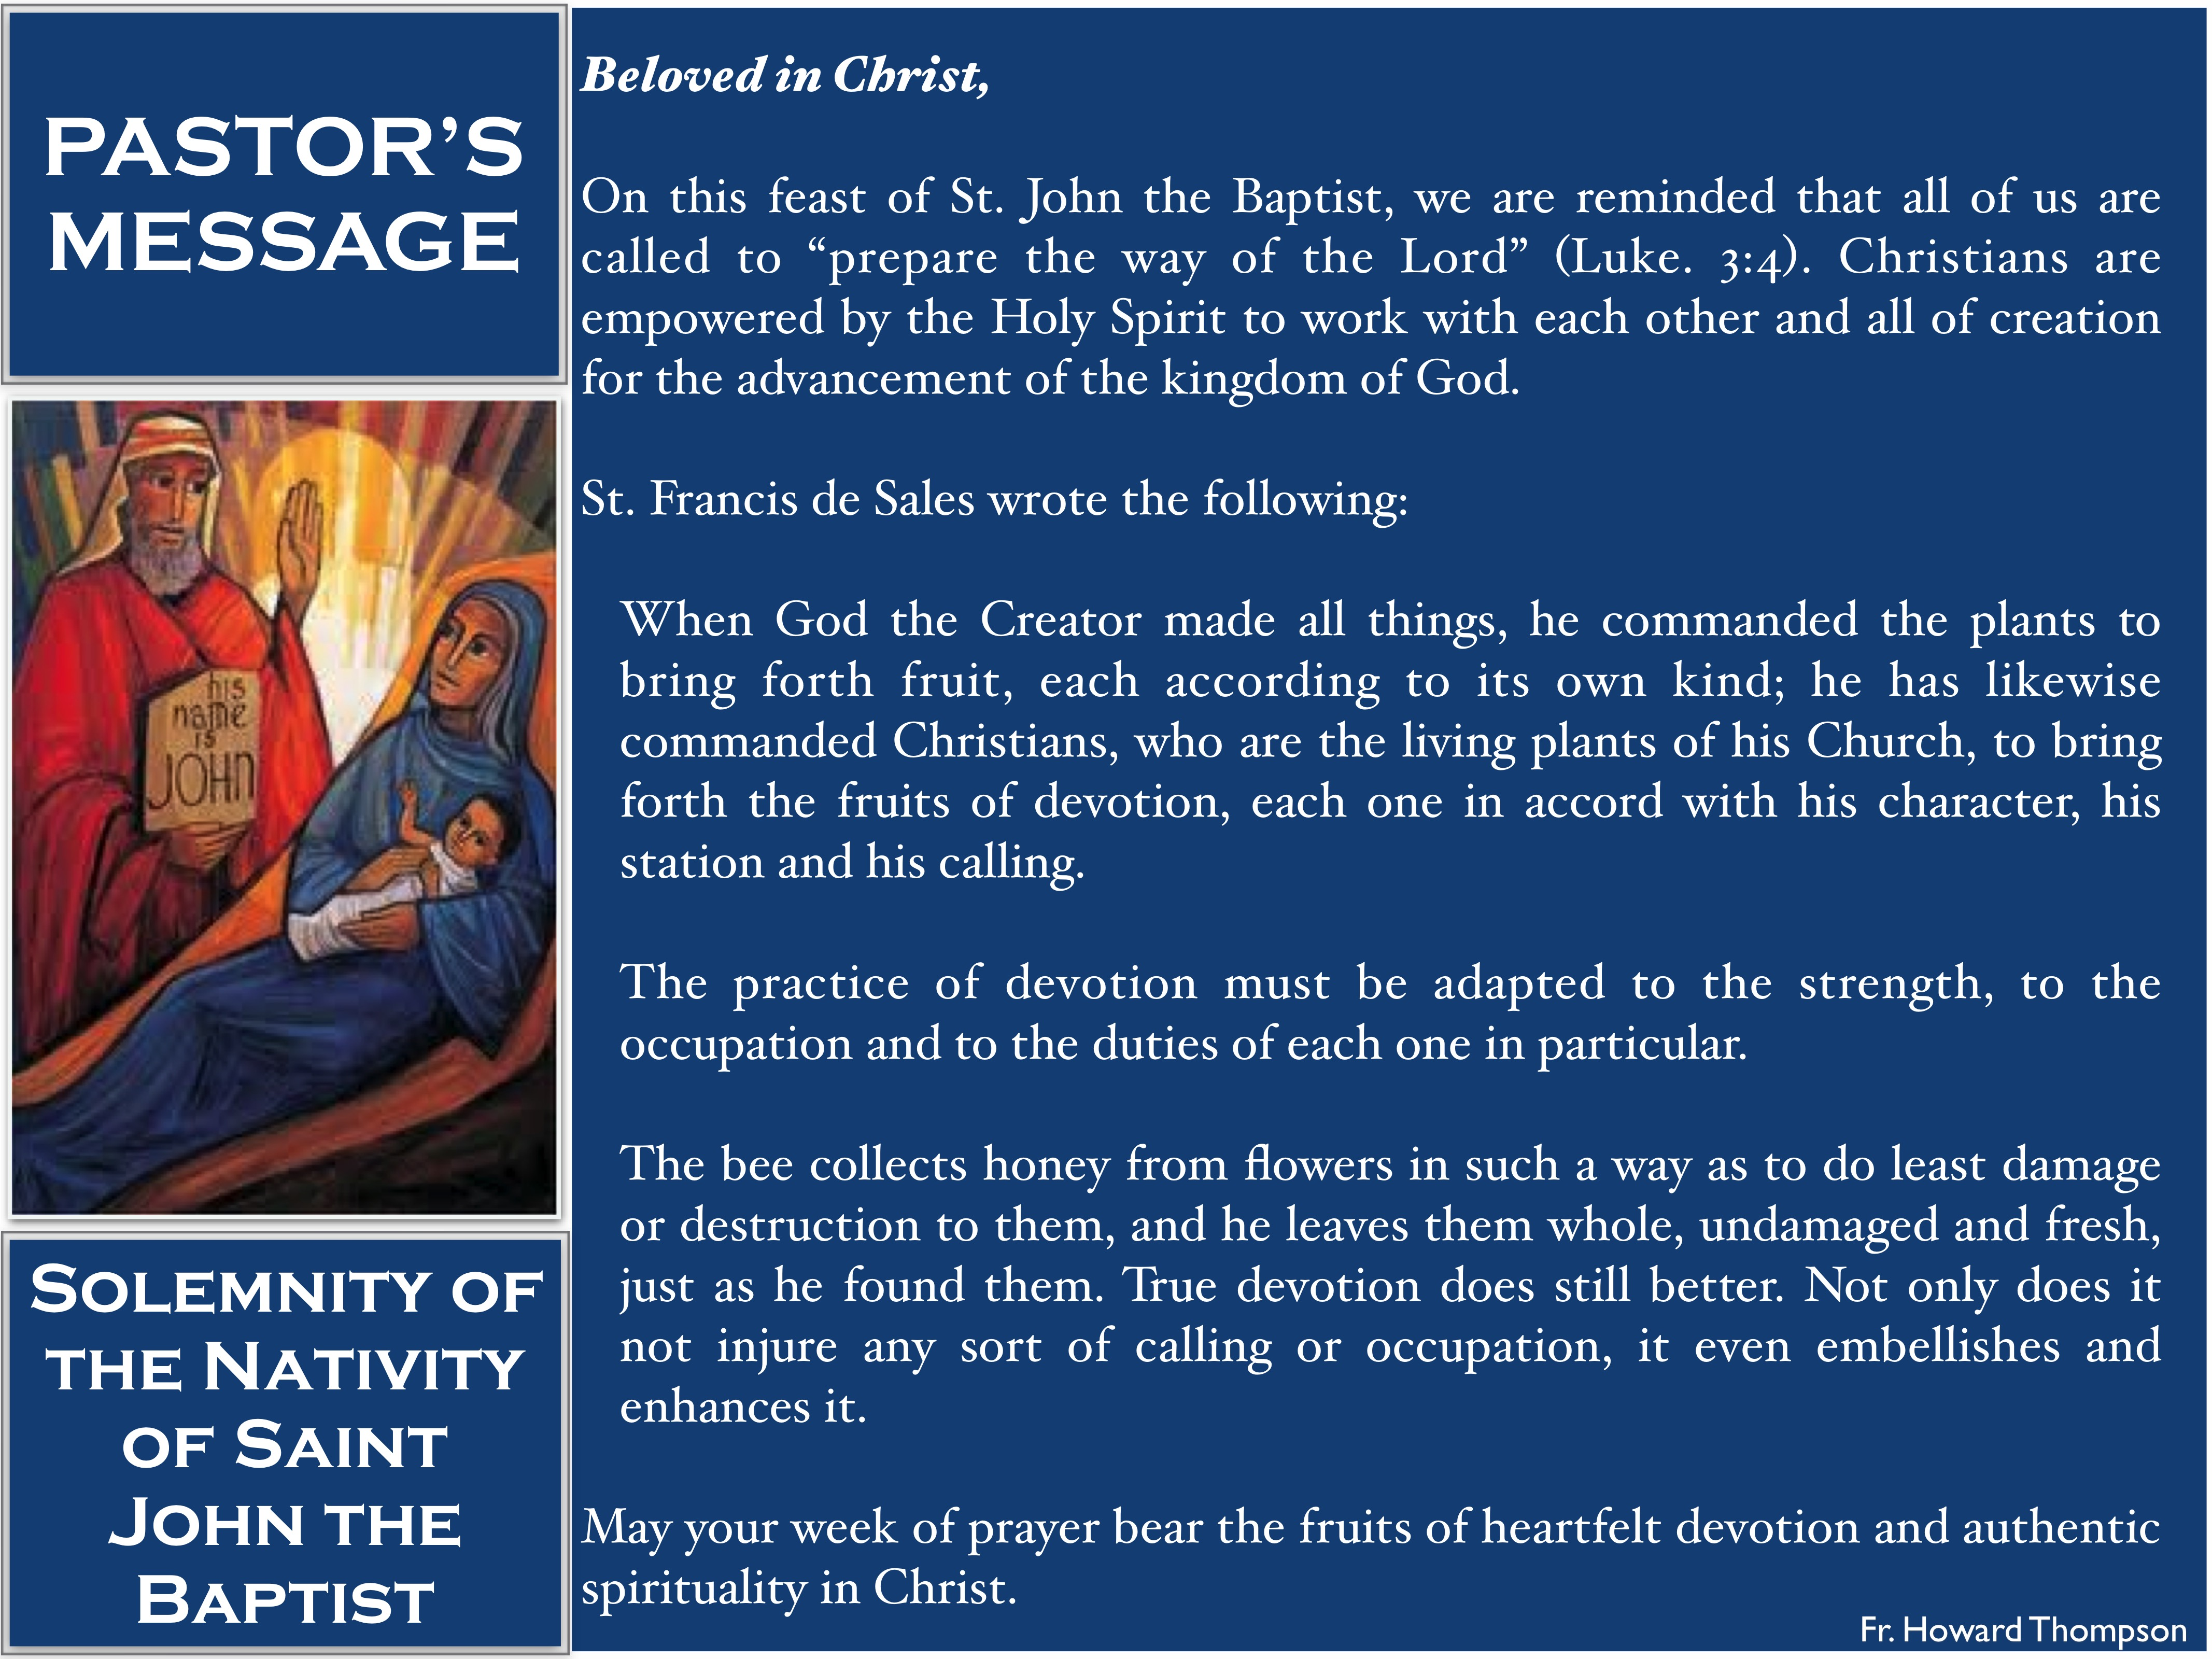 Pastor's Message - 21 Solemnity of the Nativity of Saint John the Baptist_001